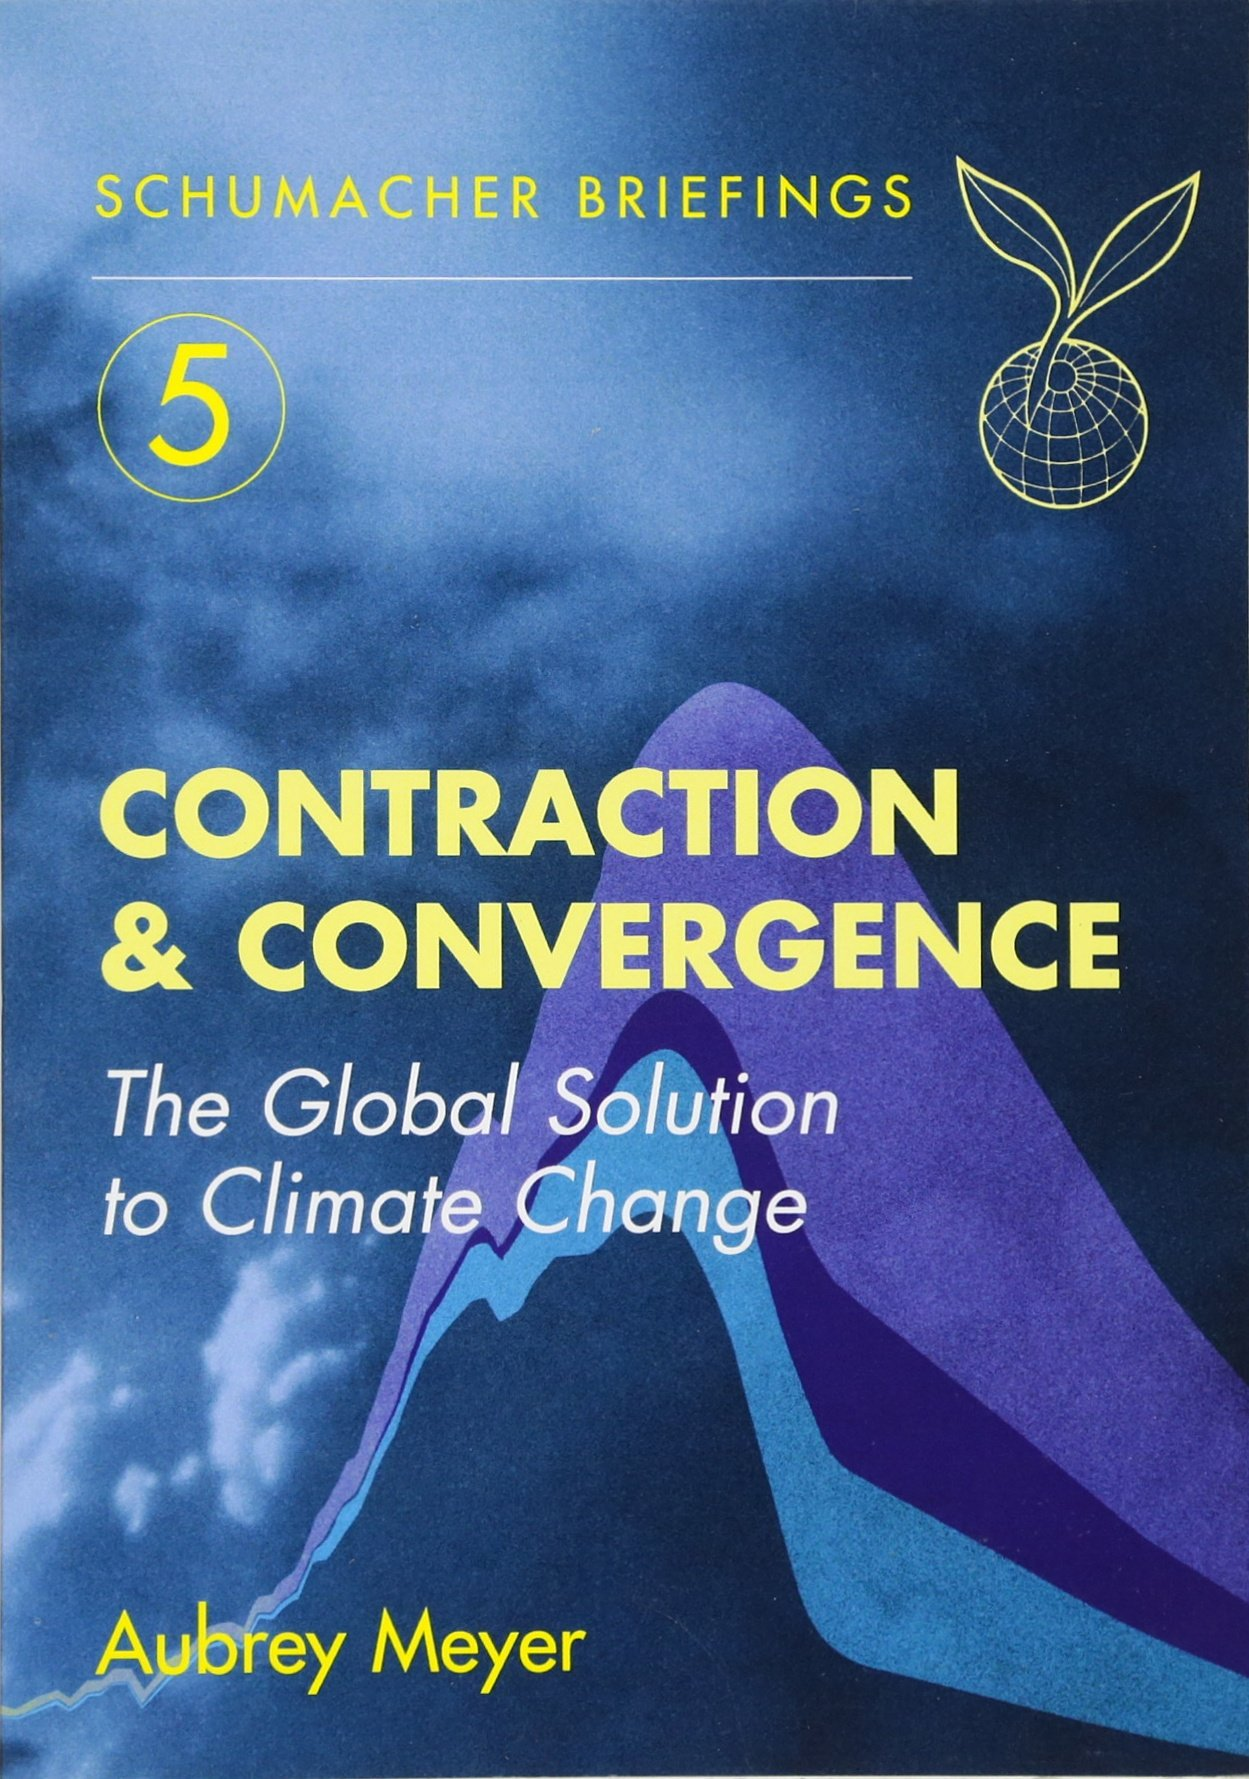 Contraction convergence the global solution to climate change contraction convergence the global solution to climate change schumacher briefings aubrey meyer james bruges 9781870098946 amazon books fandeluxe Image collections